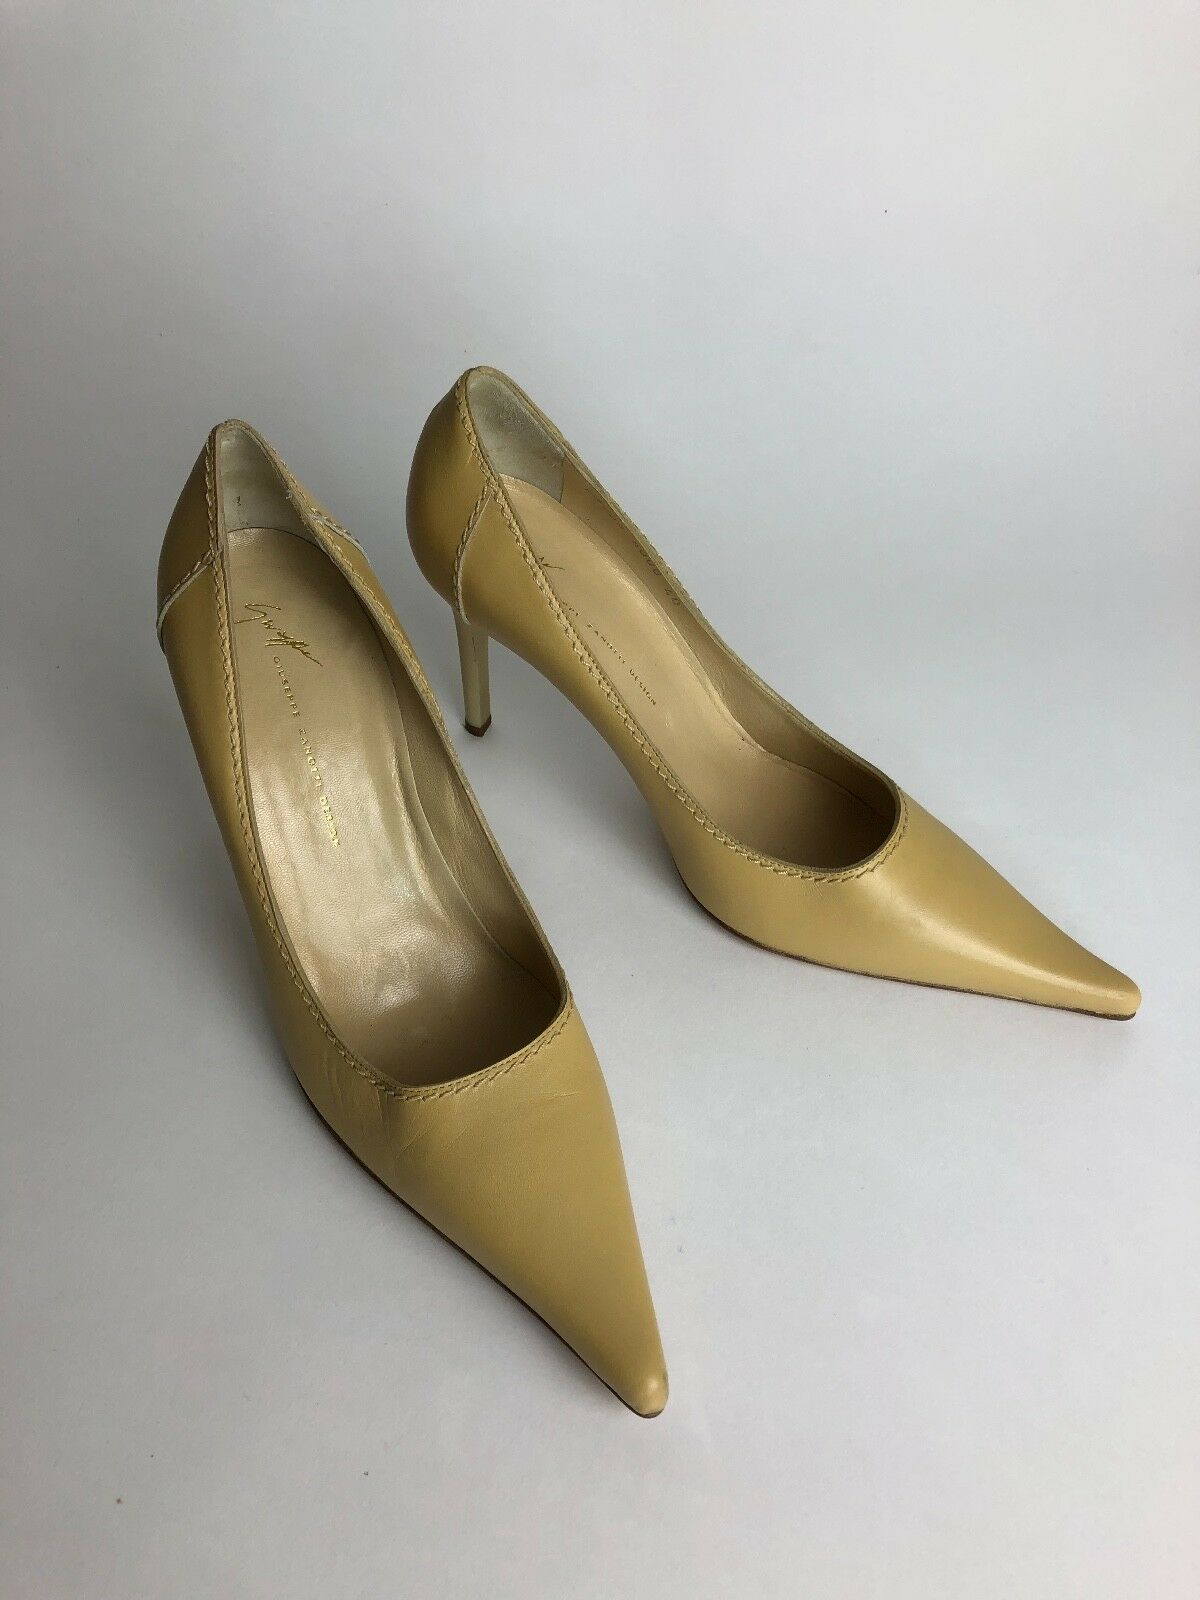 Guiseppe Zanotti Beige Tan Pointed Pointed Pointed Toe Pump Heels US Größe 9 GREAT CONDITION f4233f